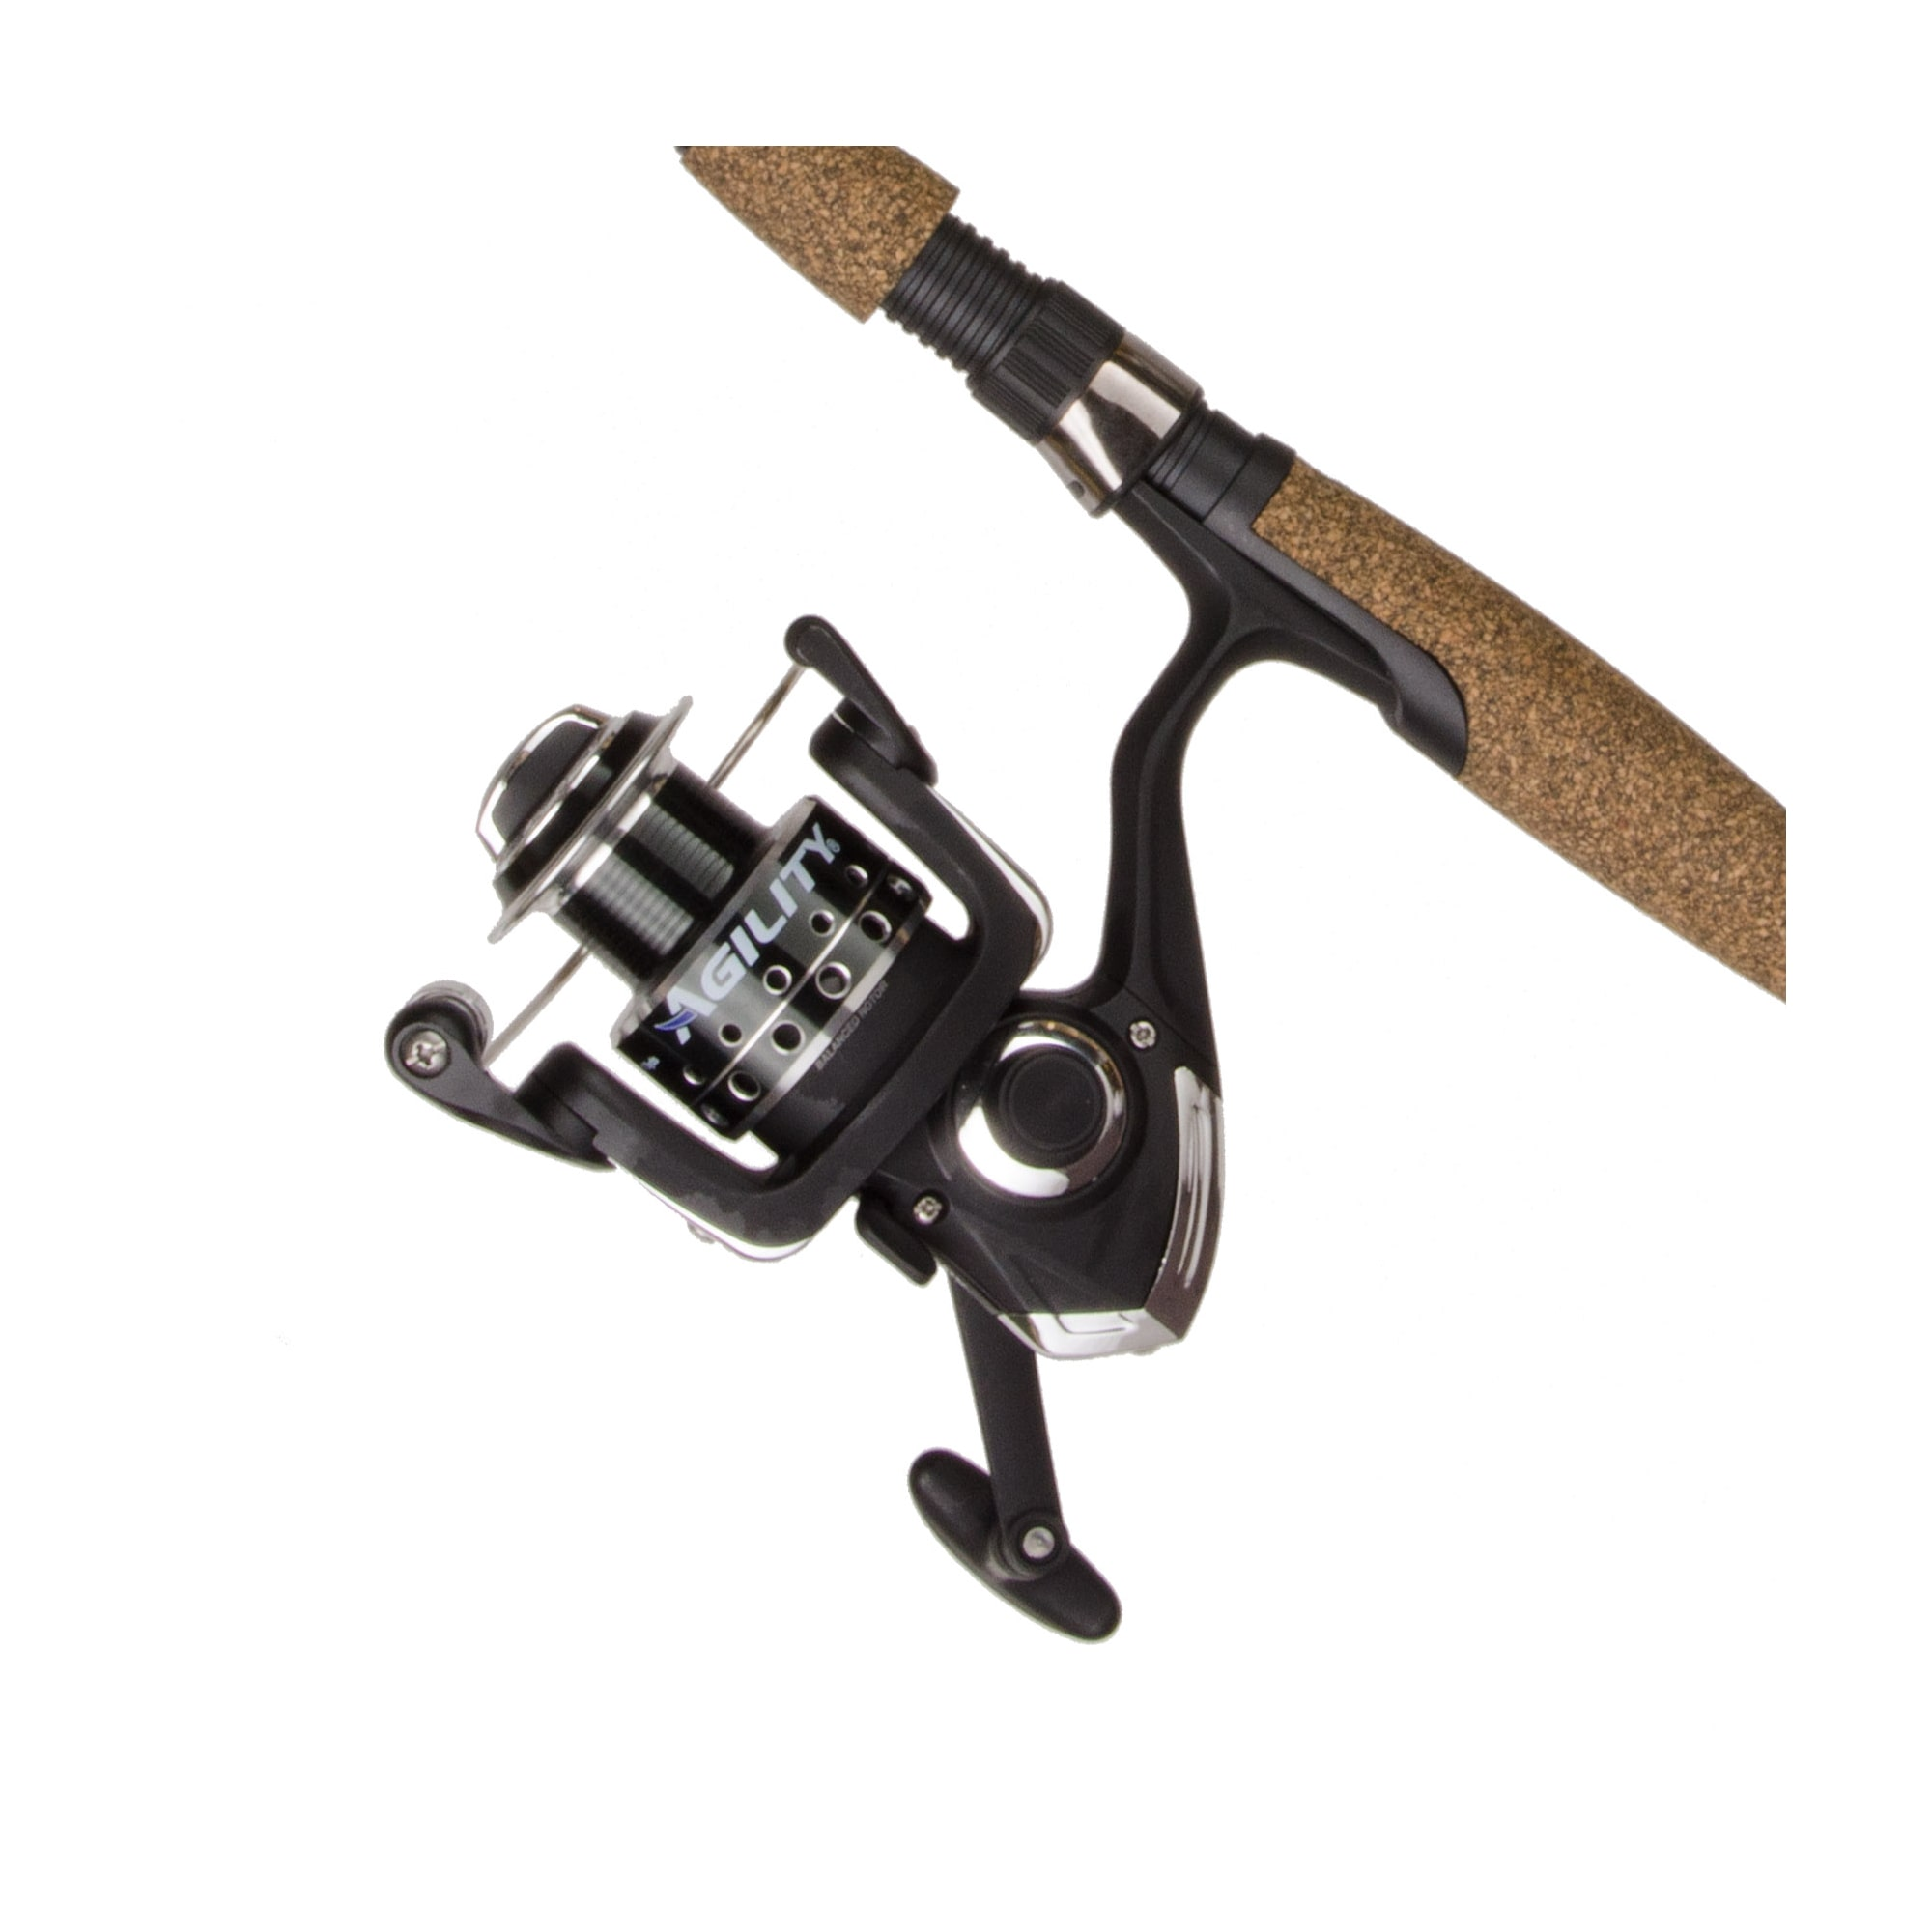 Shakespeare Agility Low Profile Baitcast Reel and Fishing Rod Combo by Shakespeare